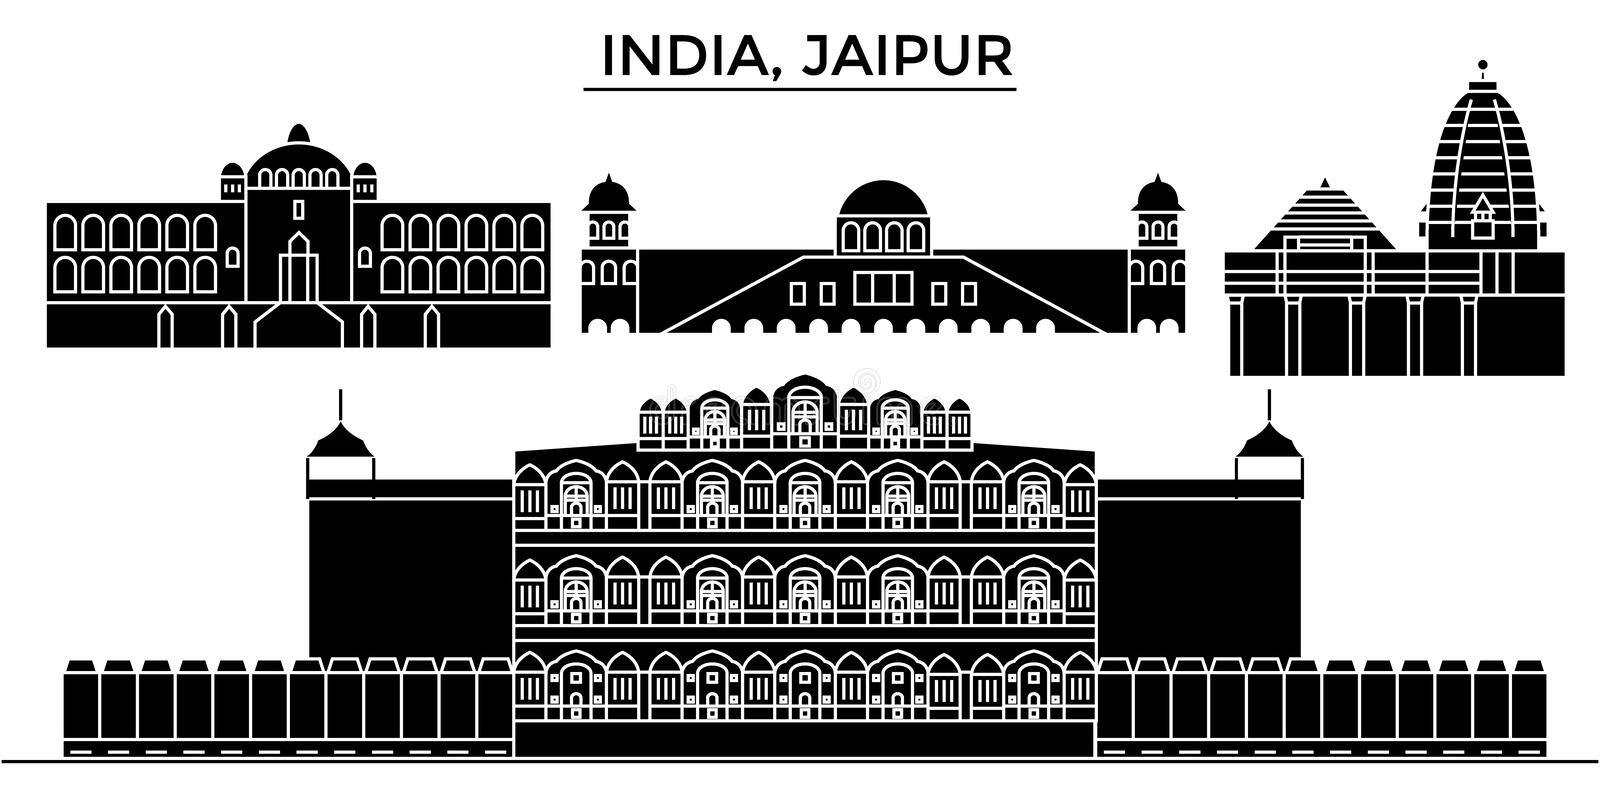 India, Jaipur architecture urban skyline with landmarks. India, Jaipur architecture skyline with landmarks, urban cityscape, buildings, houses, ,vector city stock illustration